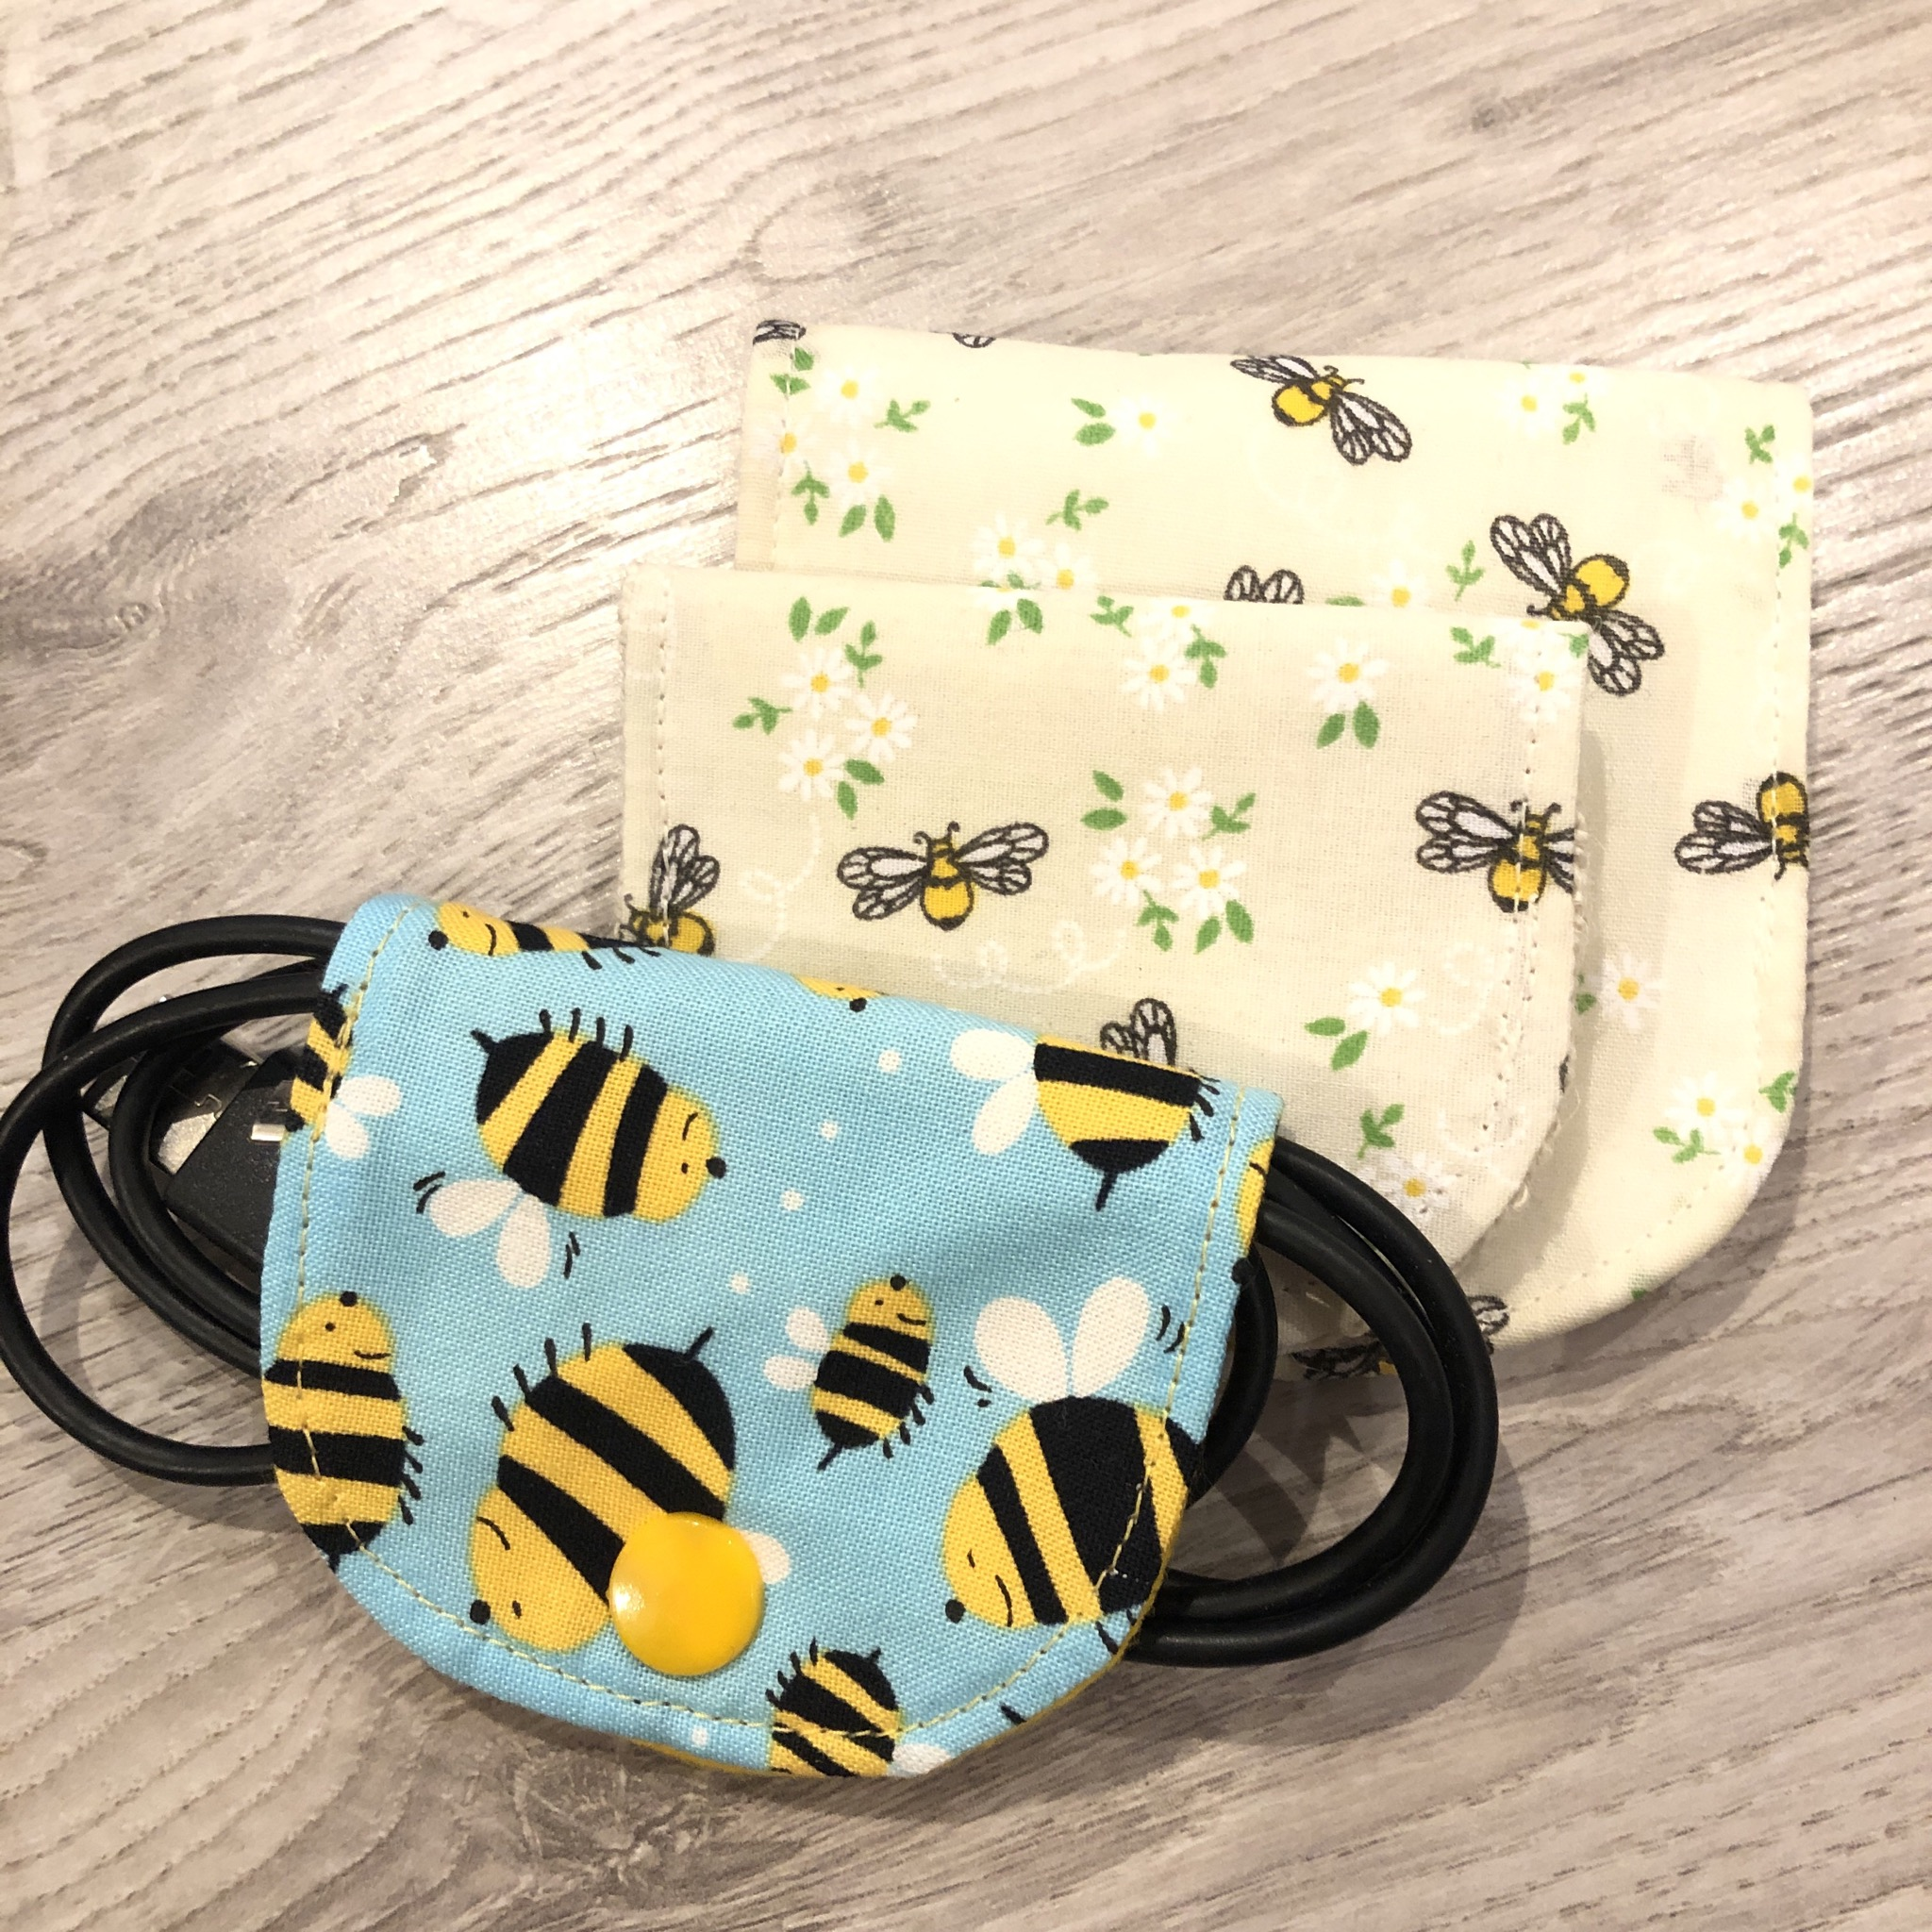 Bee fabric charger cable tidies by Stella's stitchcraft.